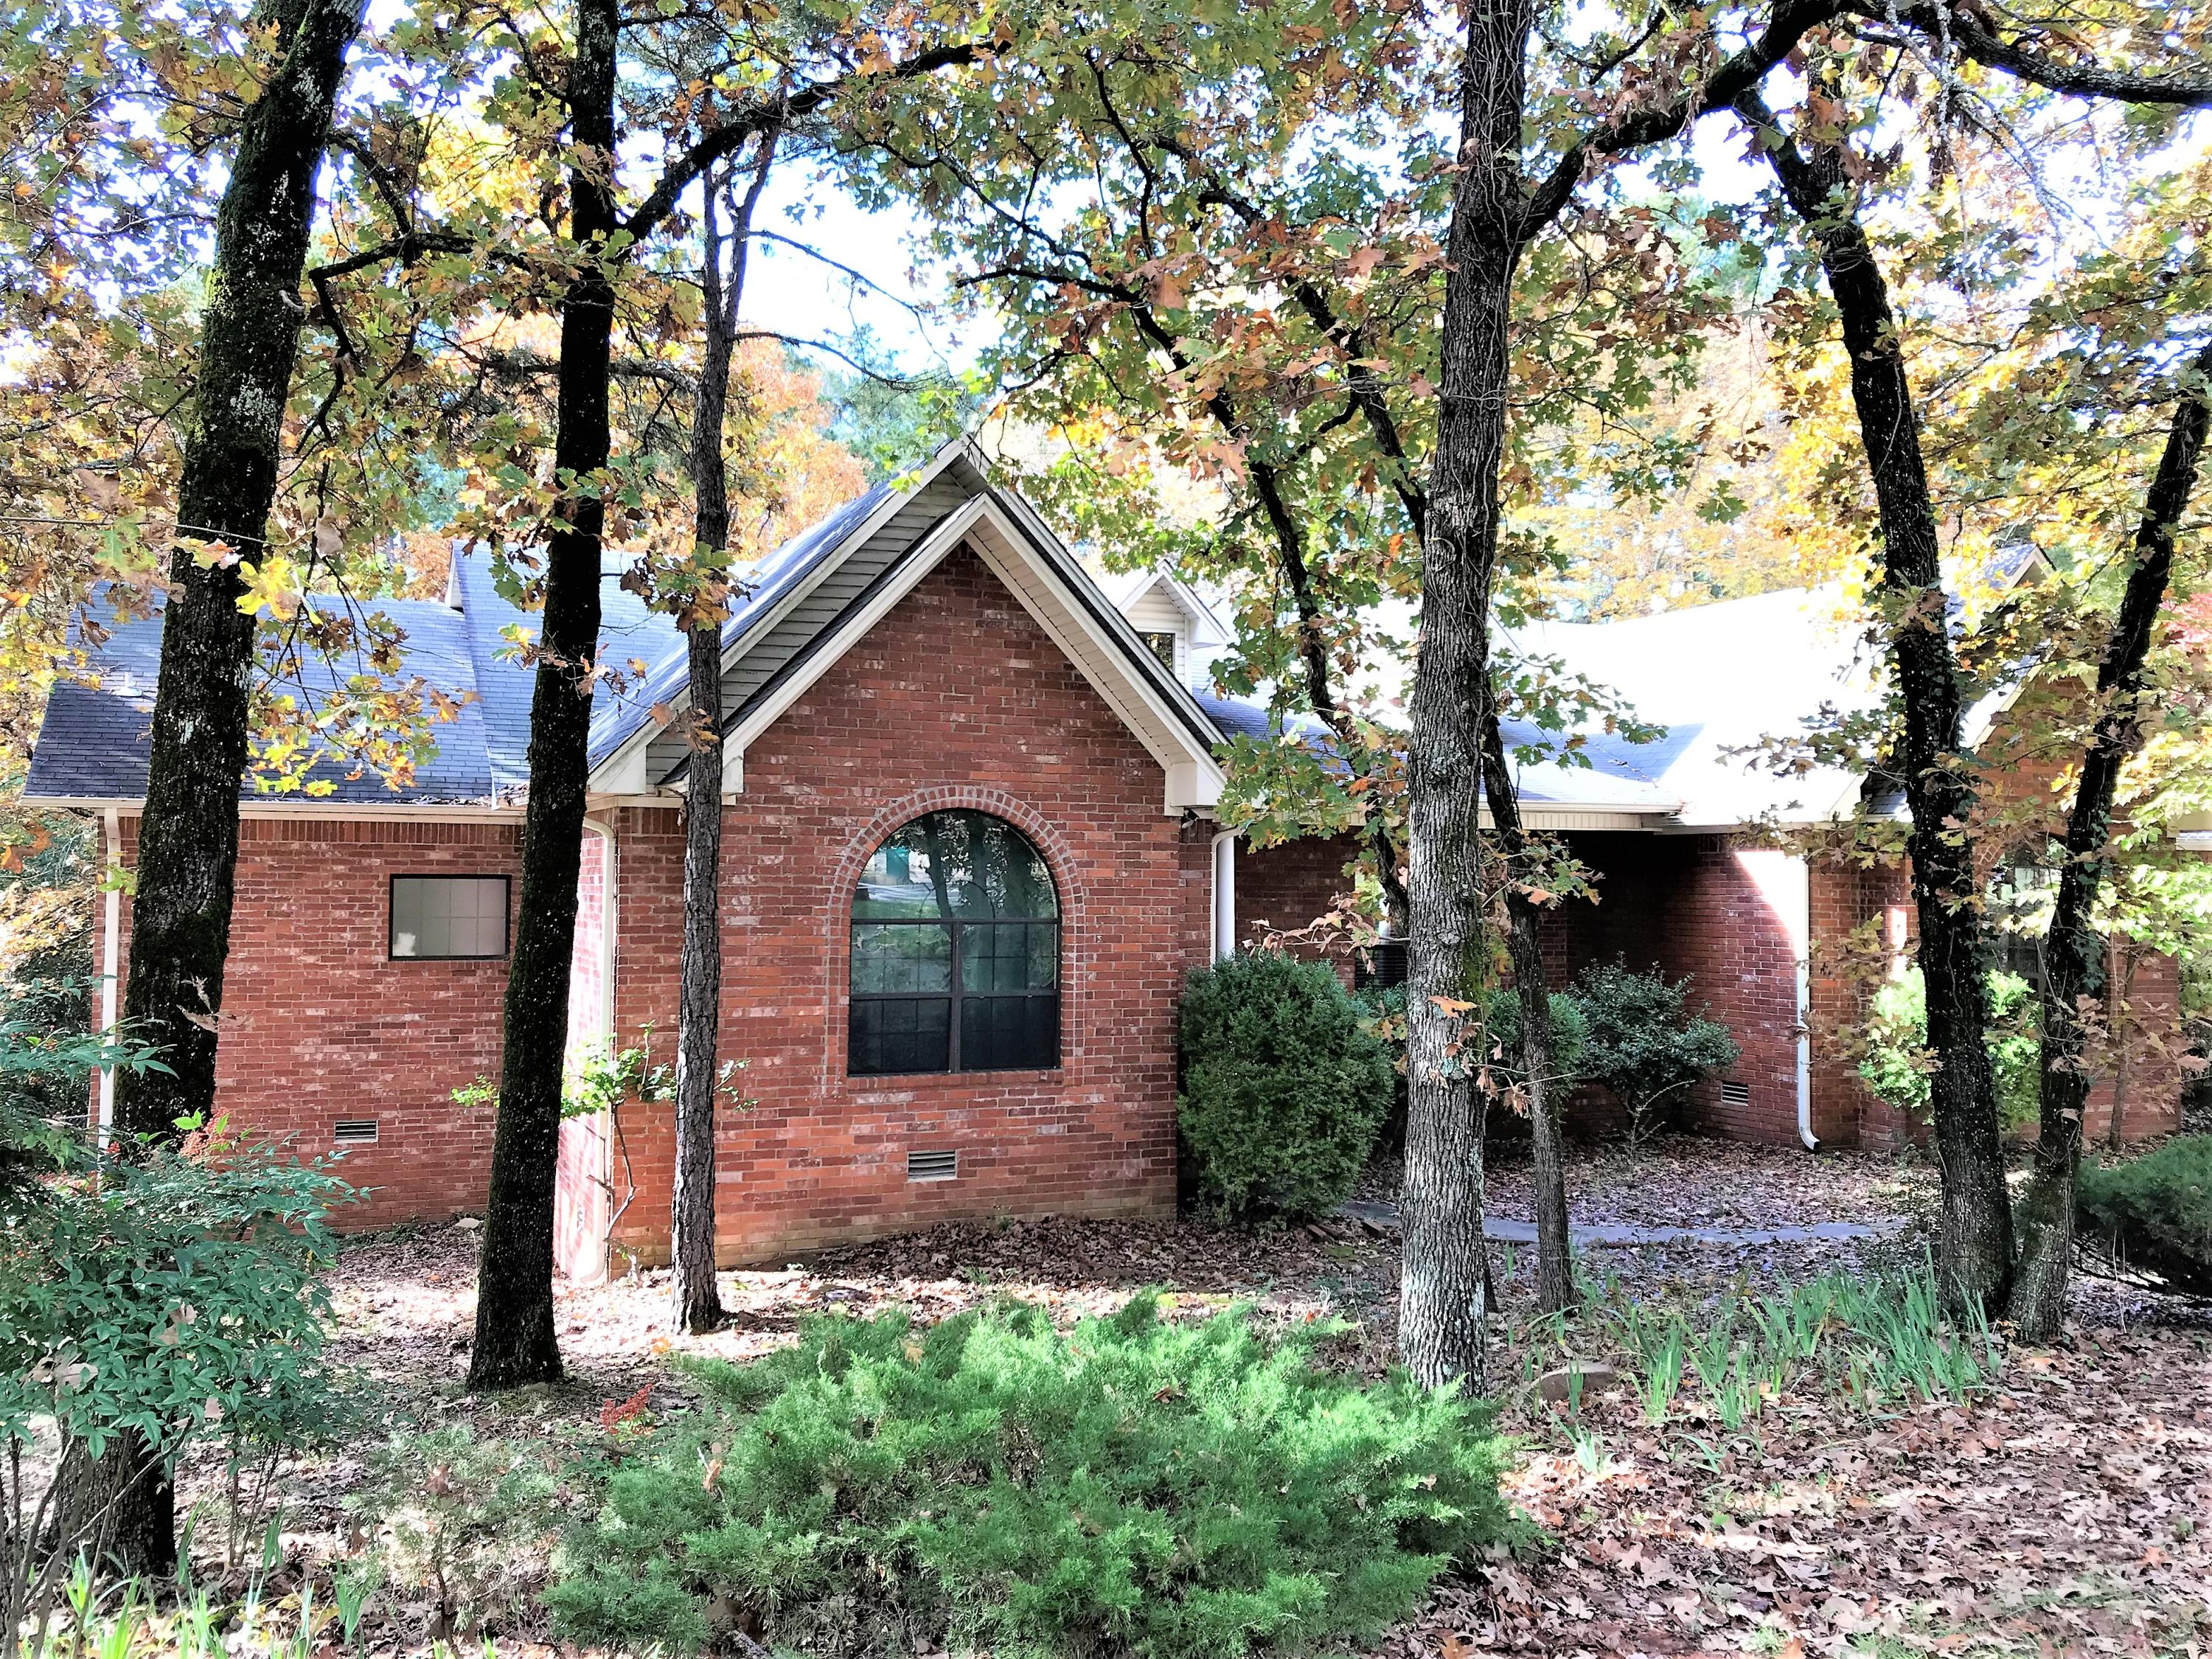 MLS #: 18-2415, Home for Sale at 1410 Lands End S , Russellville, AR